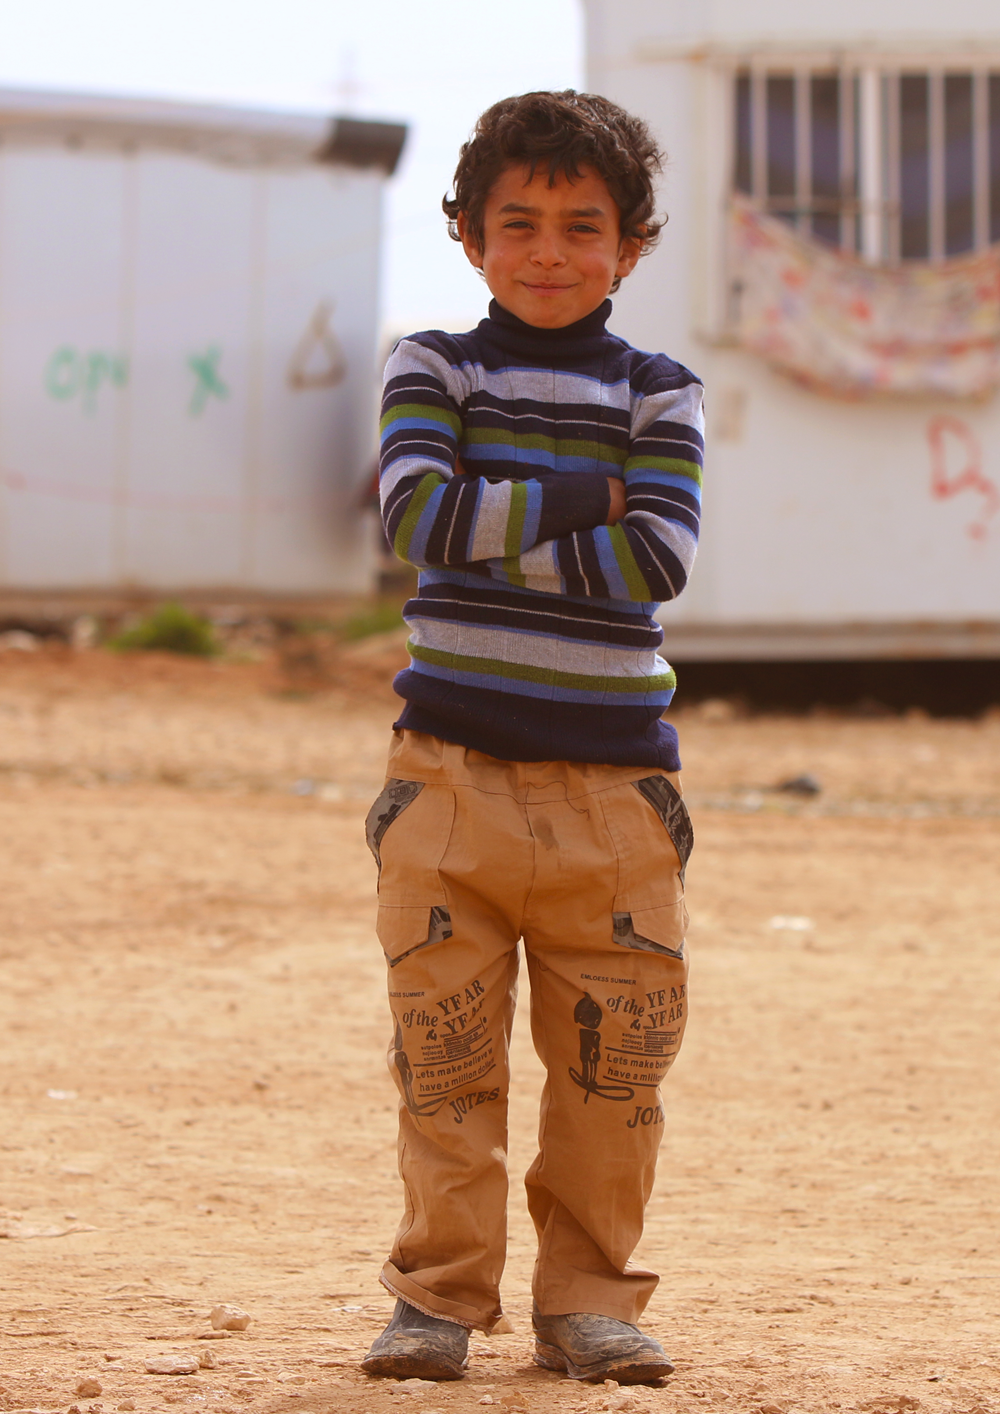 Syrian refugee boy crossing arms